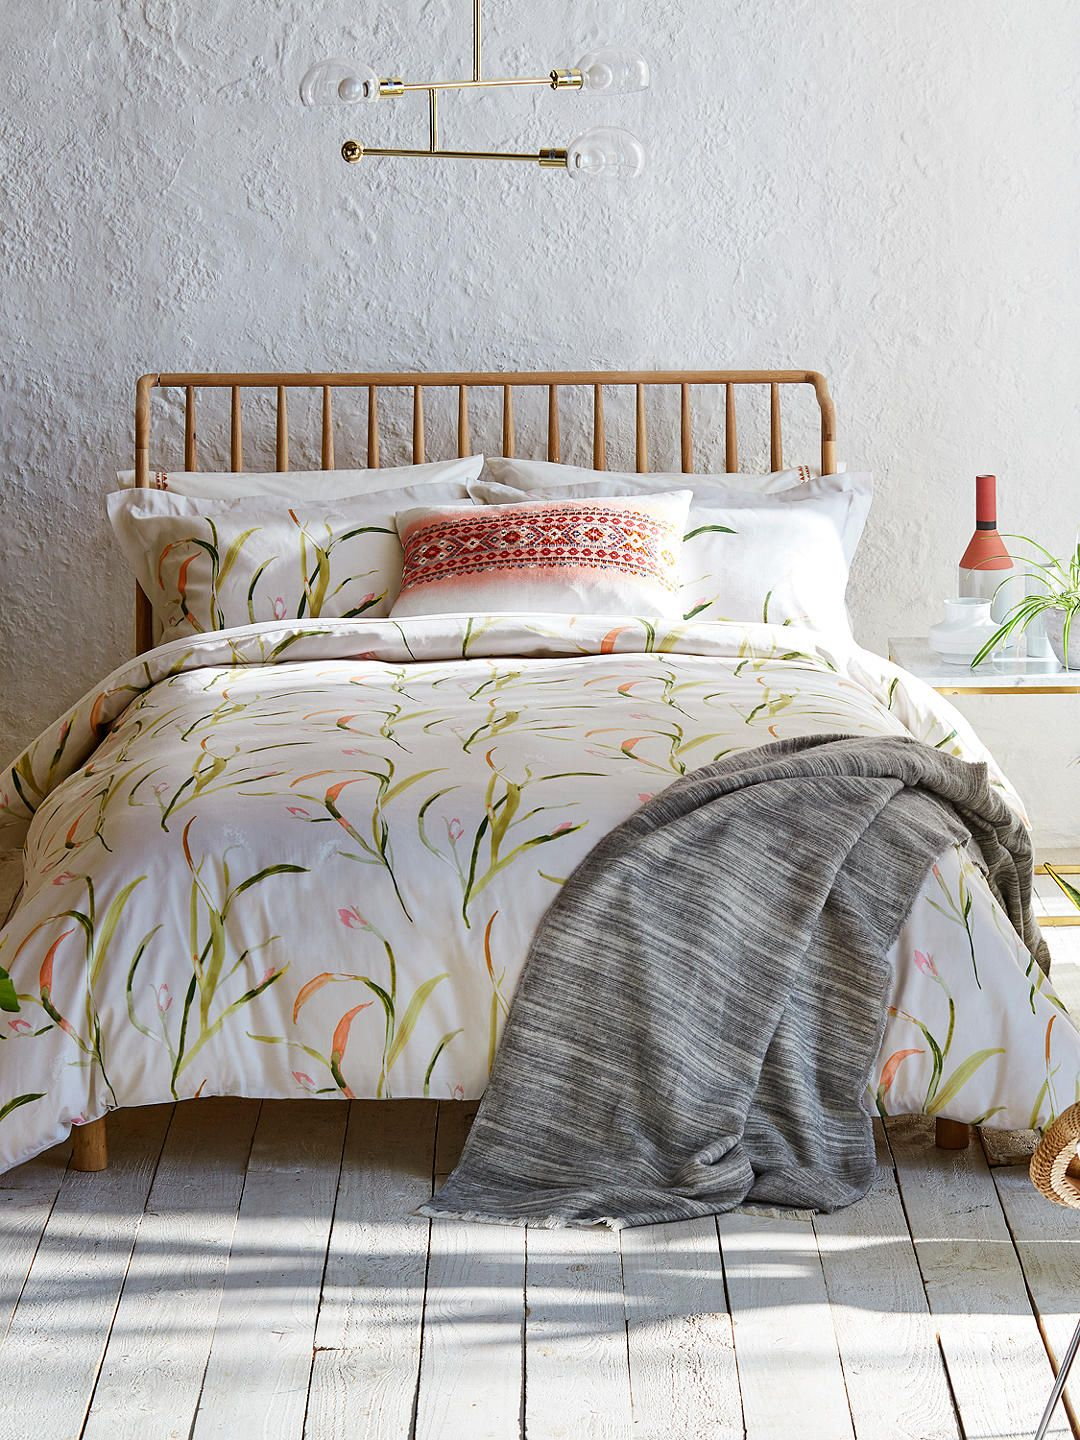 Harlequin Saona Bedding Super king duvet covers